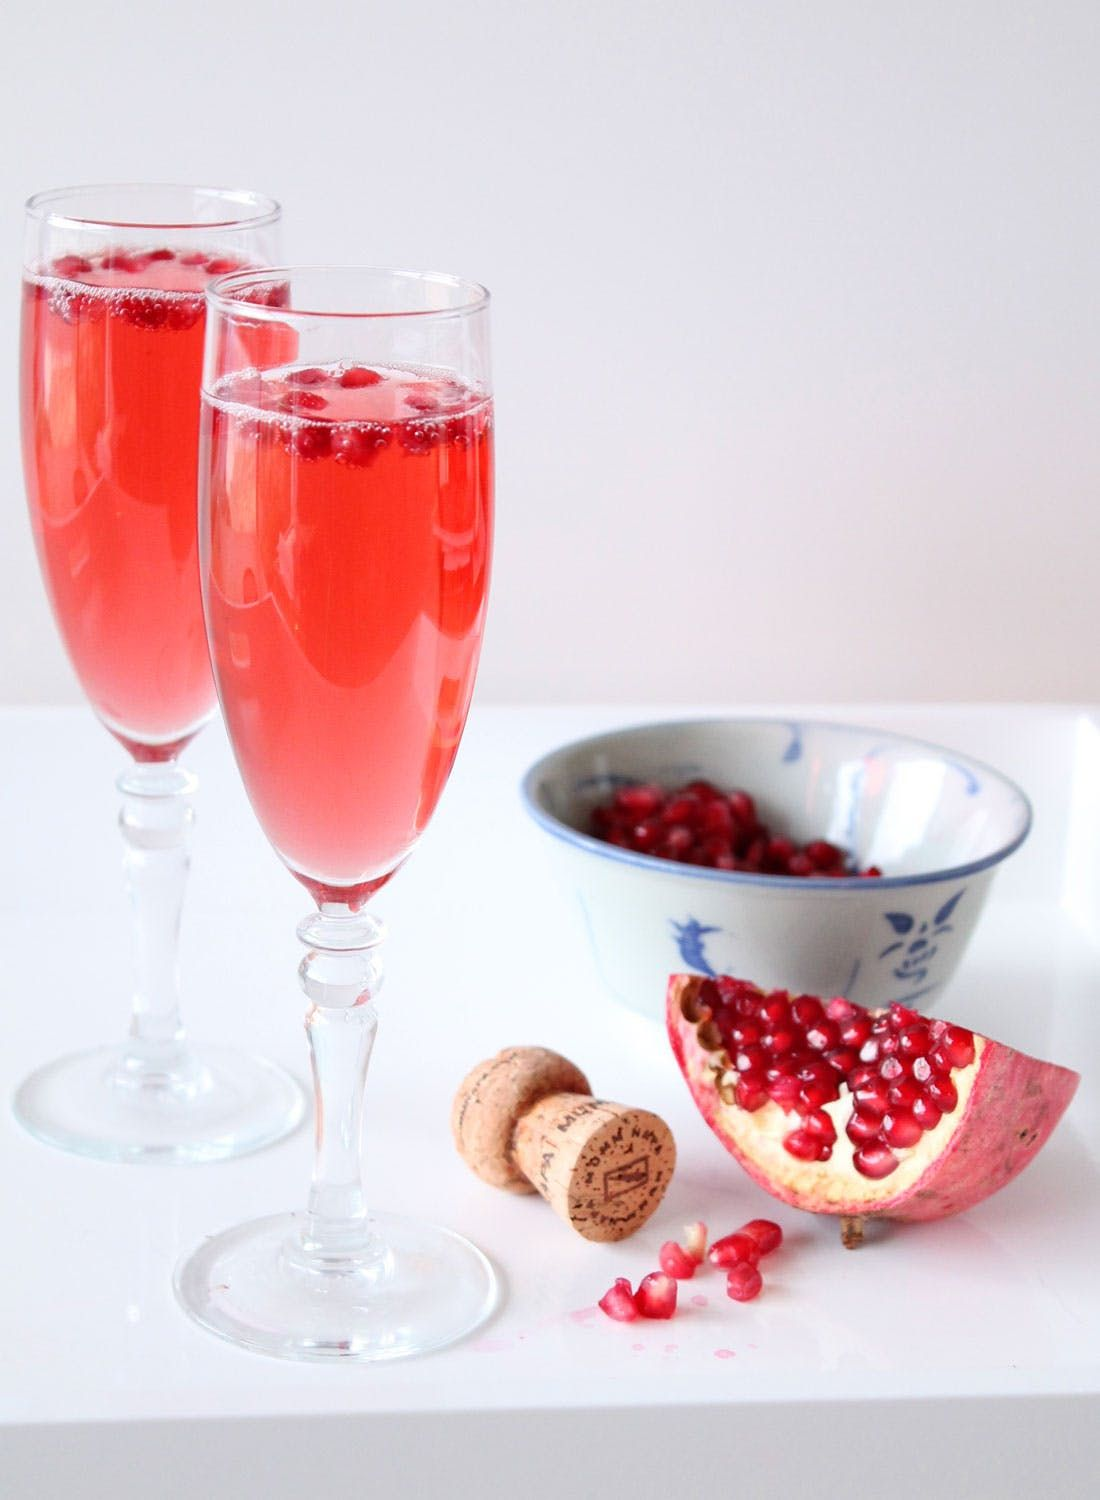 Cocktails For Cupid Try Our Pomegranate White Tea Fizz Recipe Pomegranate White Tea Fruity Cocktails Pomegranate Recipes